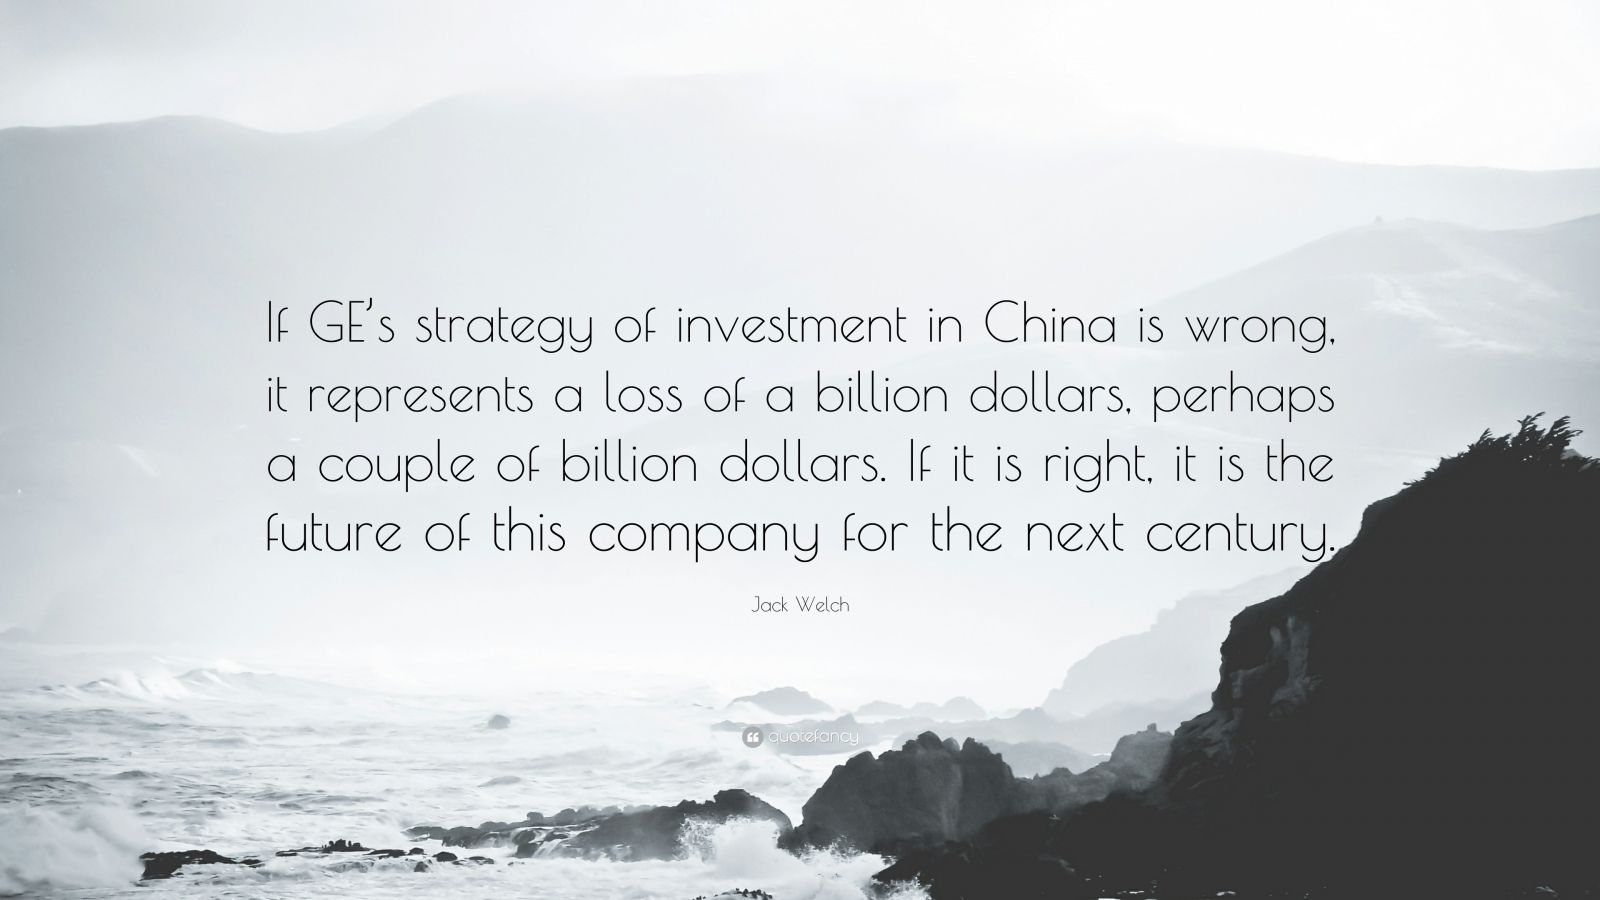 """Jack Welch Quote: """"If GE's strategy of investment in China is wrong, it represents a loss of a billion dollars, perhaps a couple of billion dollars. If it is right, it is the future of this company for the next century."""""""